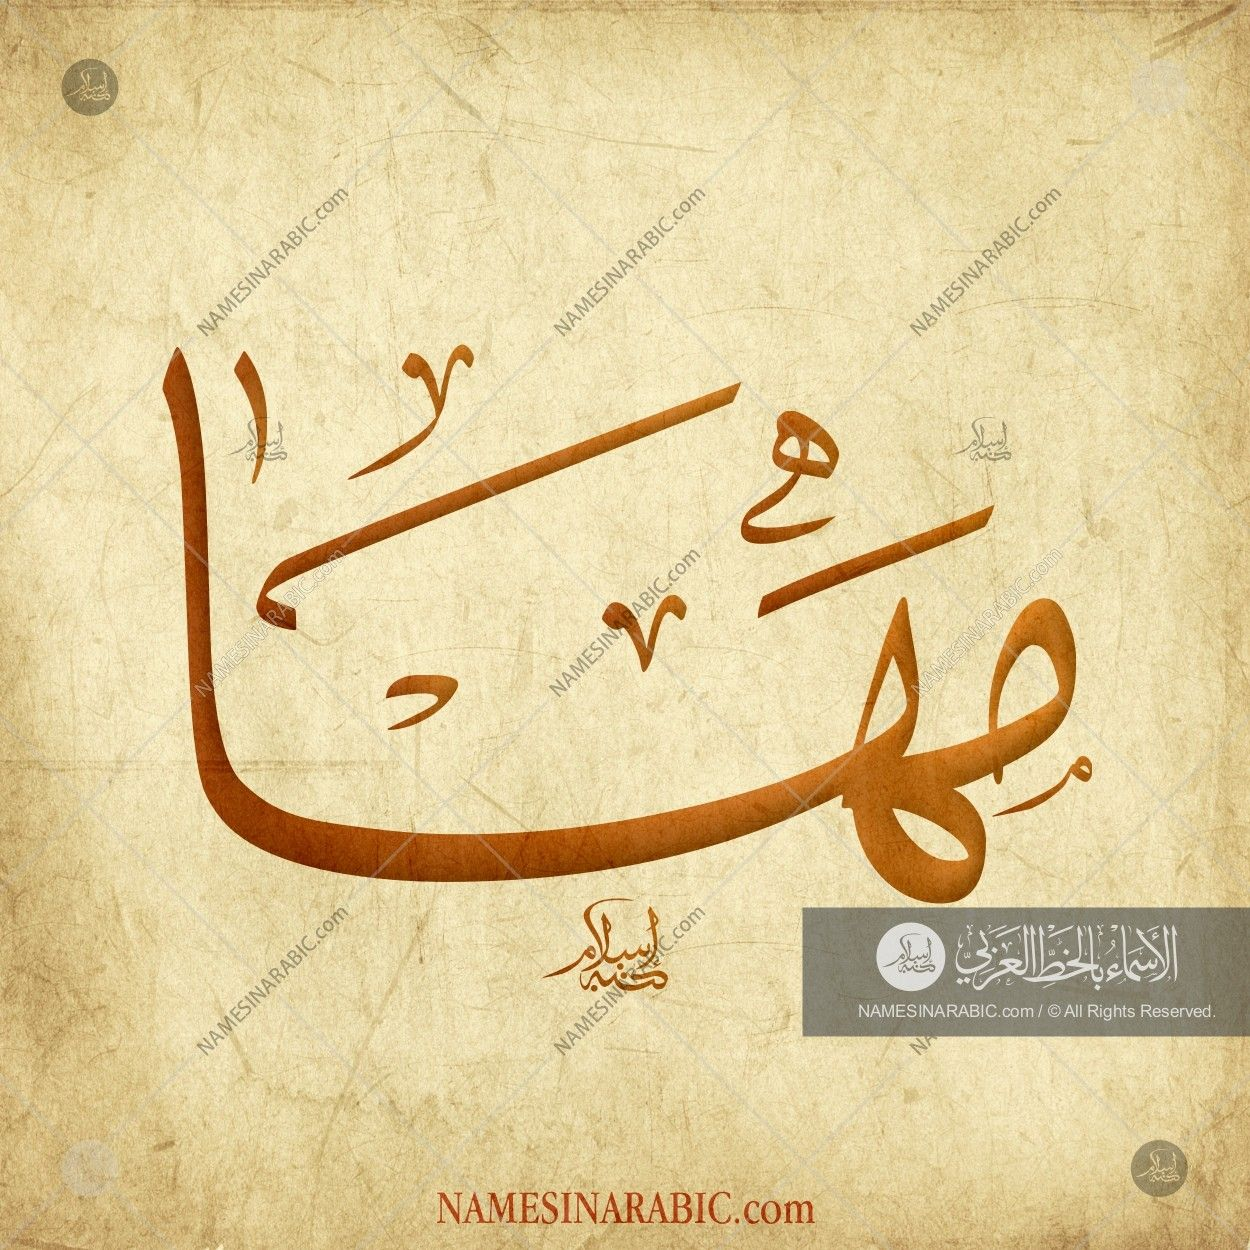 Maha مها Names In Arabic Calligraphy Name 3196 Calligraphy Name Islamic Calligraphy Painting Calligraphy